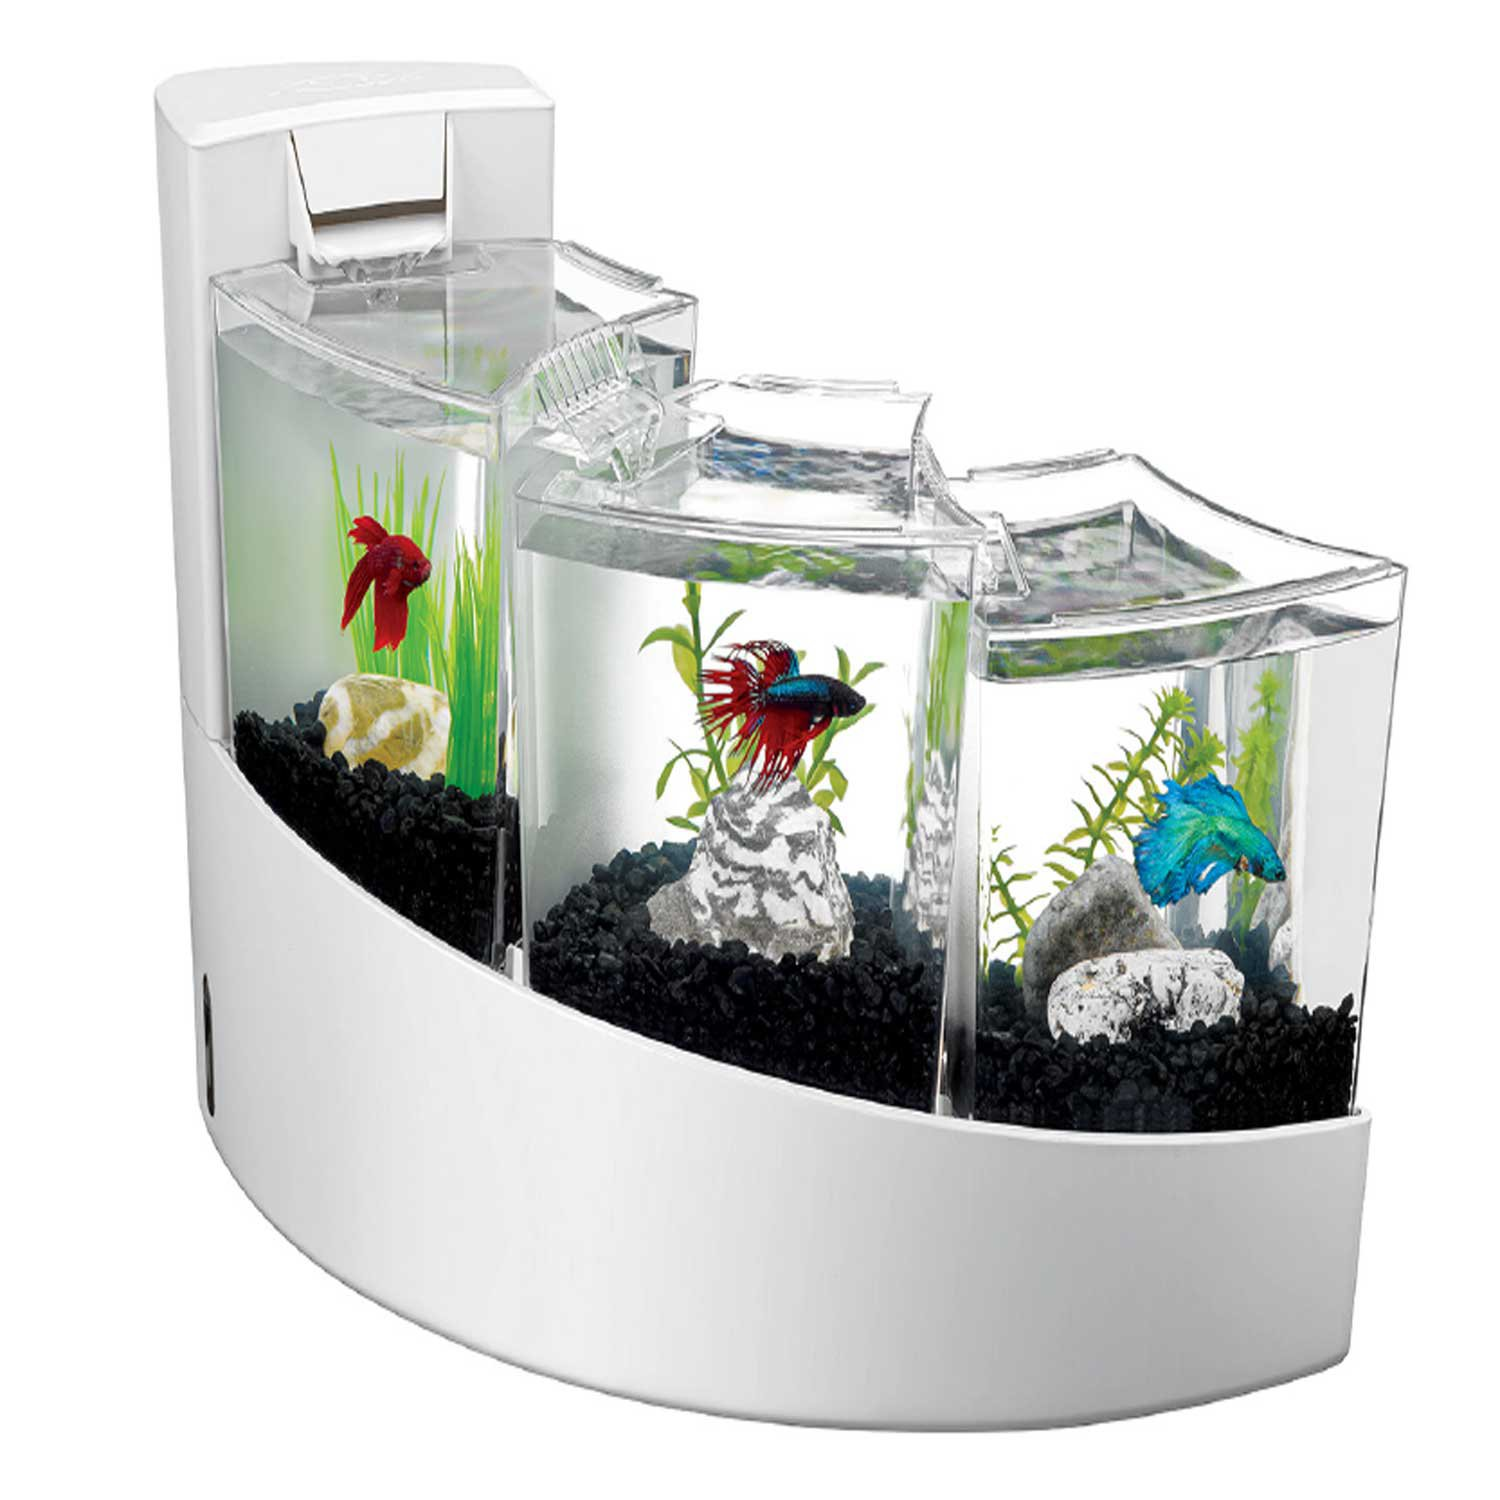 Aqueon betta falls aquarium kit in white petco for Amazon fish tanks for sale